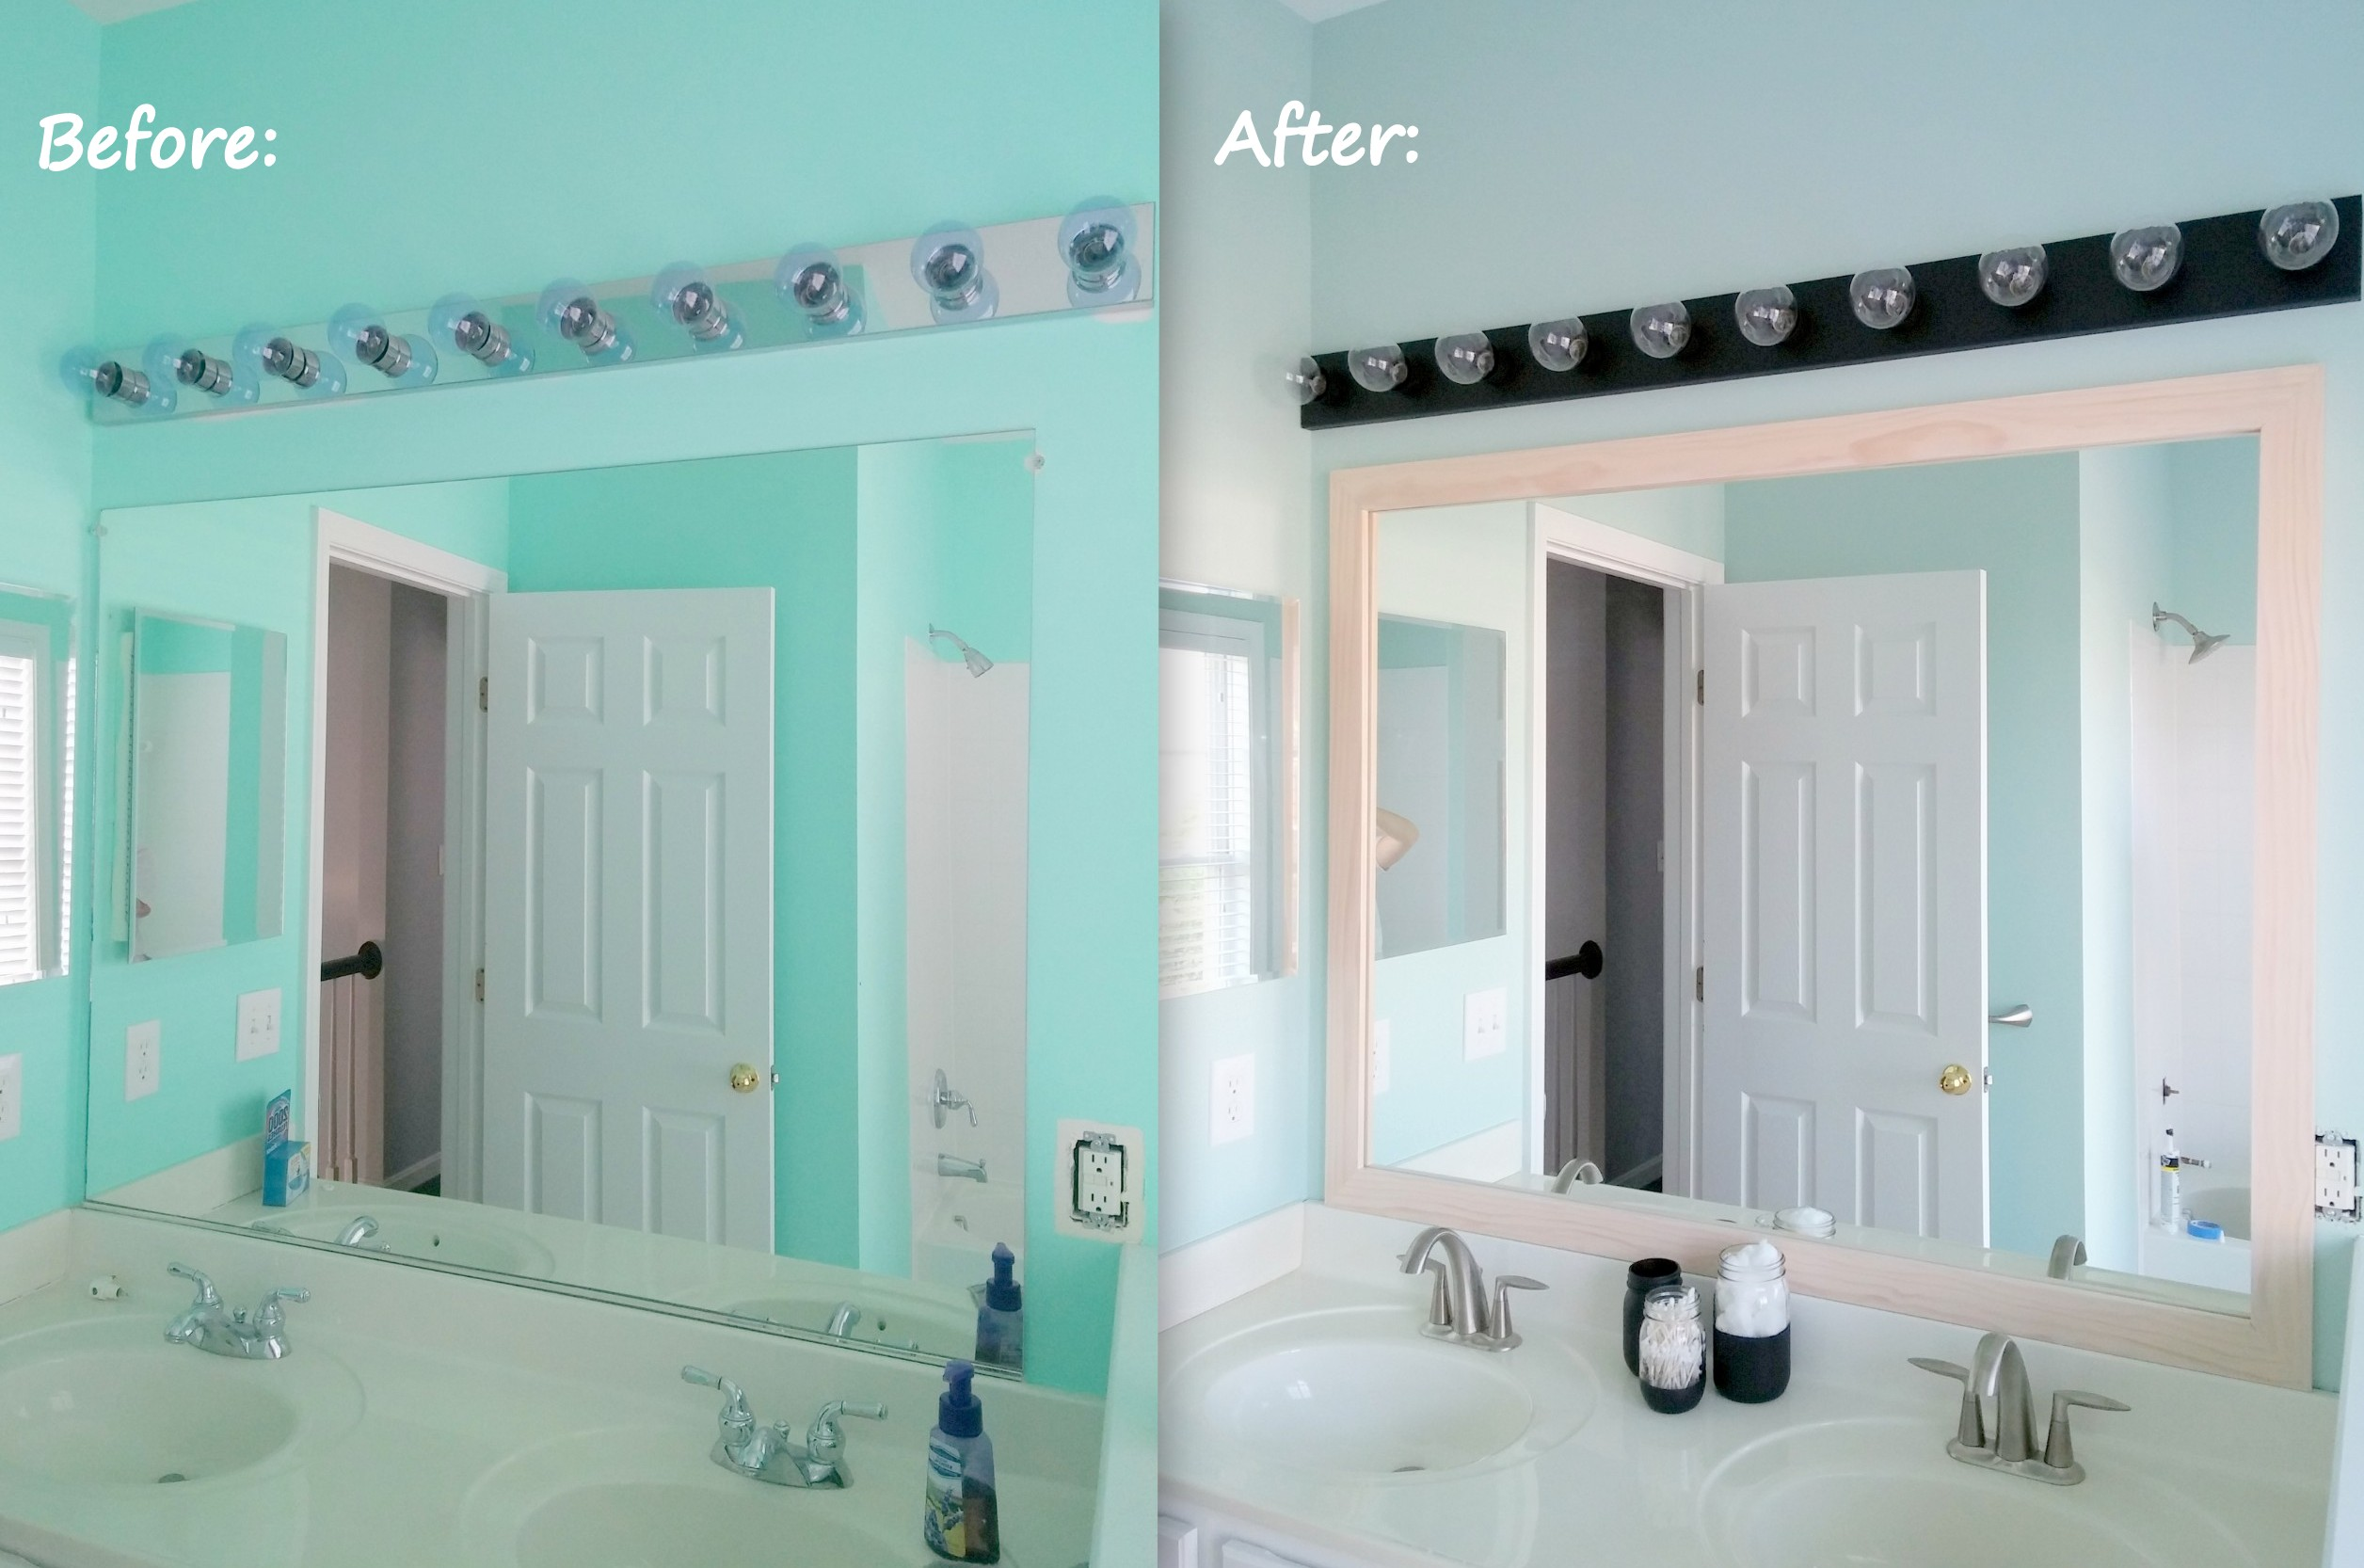 Painting Bathroom Fixtures Updates Design By Saenz